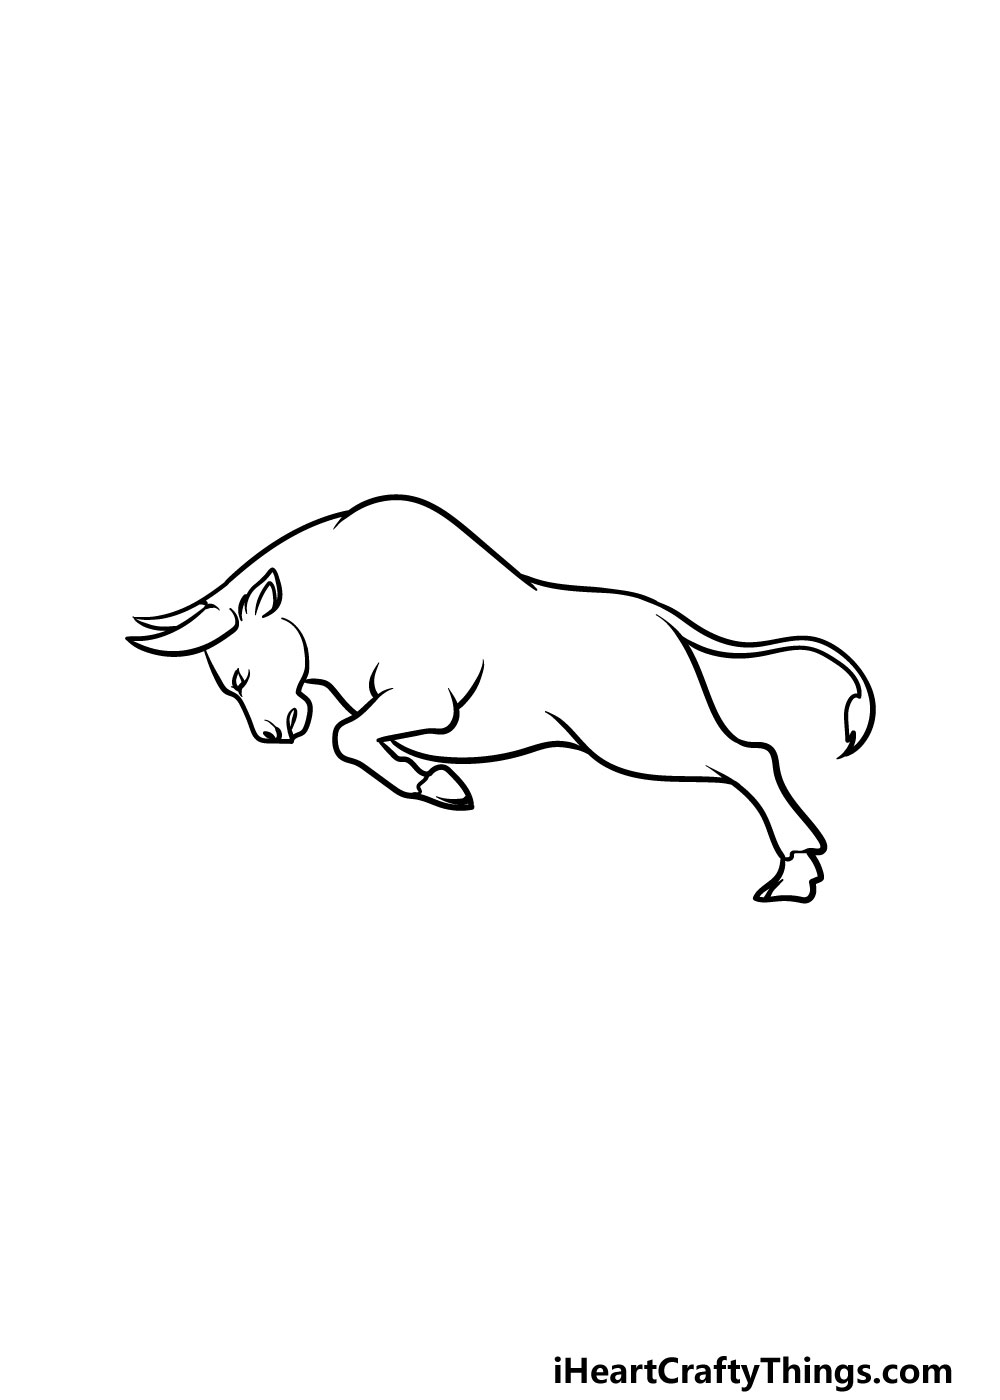 drawing a bull step 3